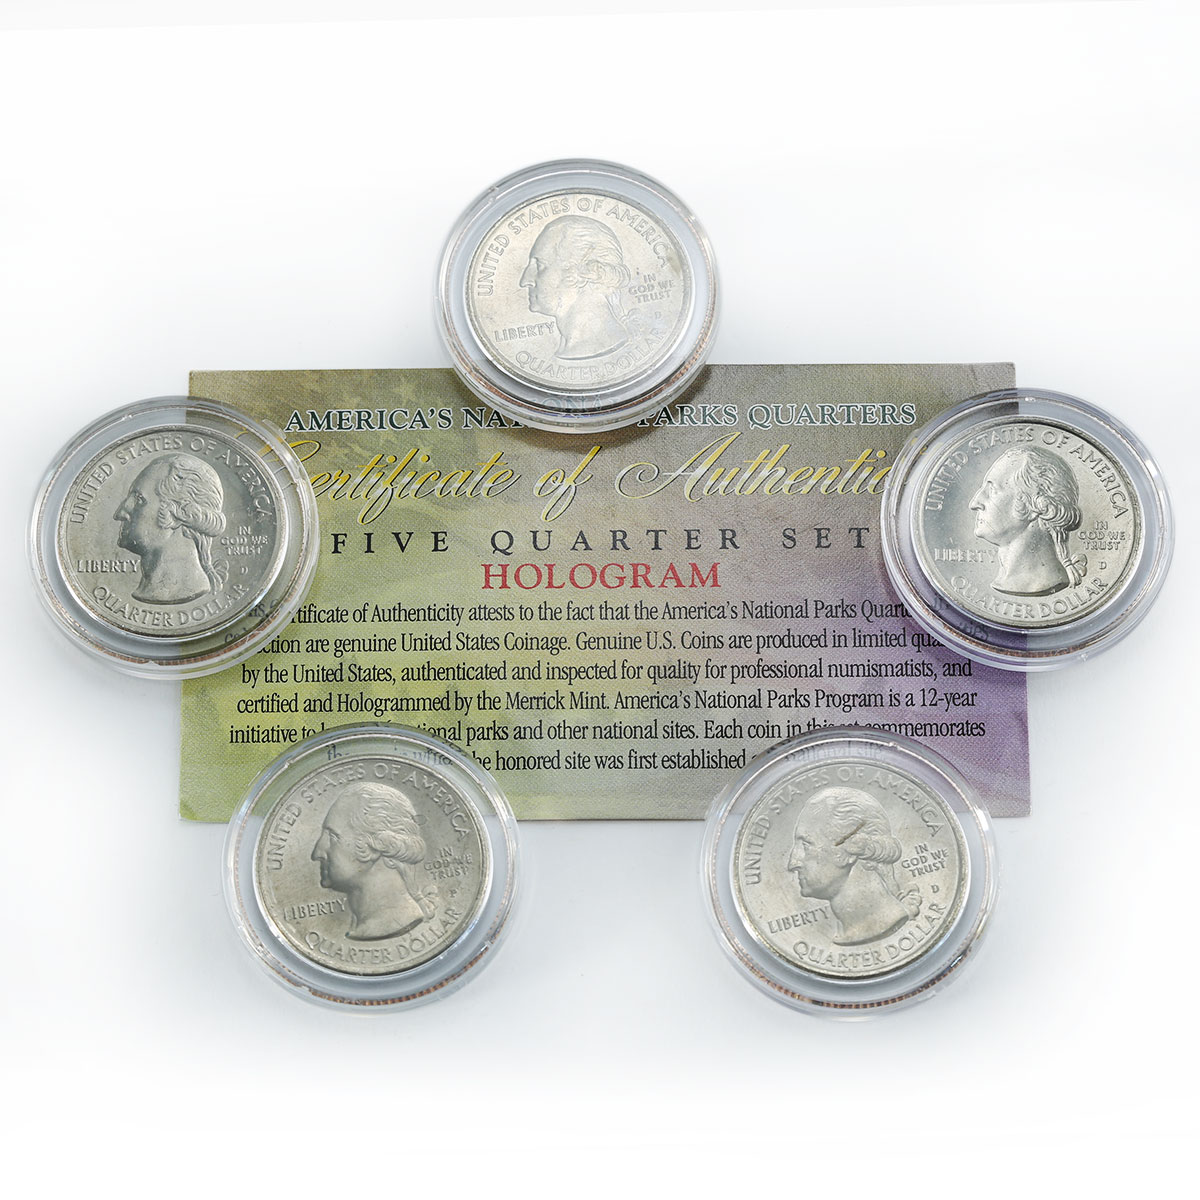 US 25 cents set of 5 America's National Park hologram coins 2012